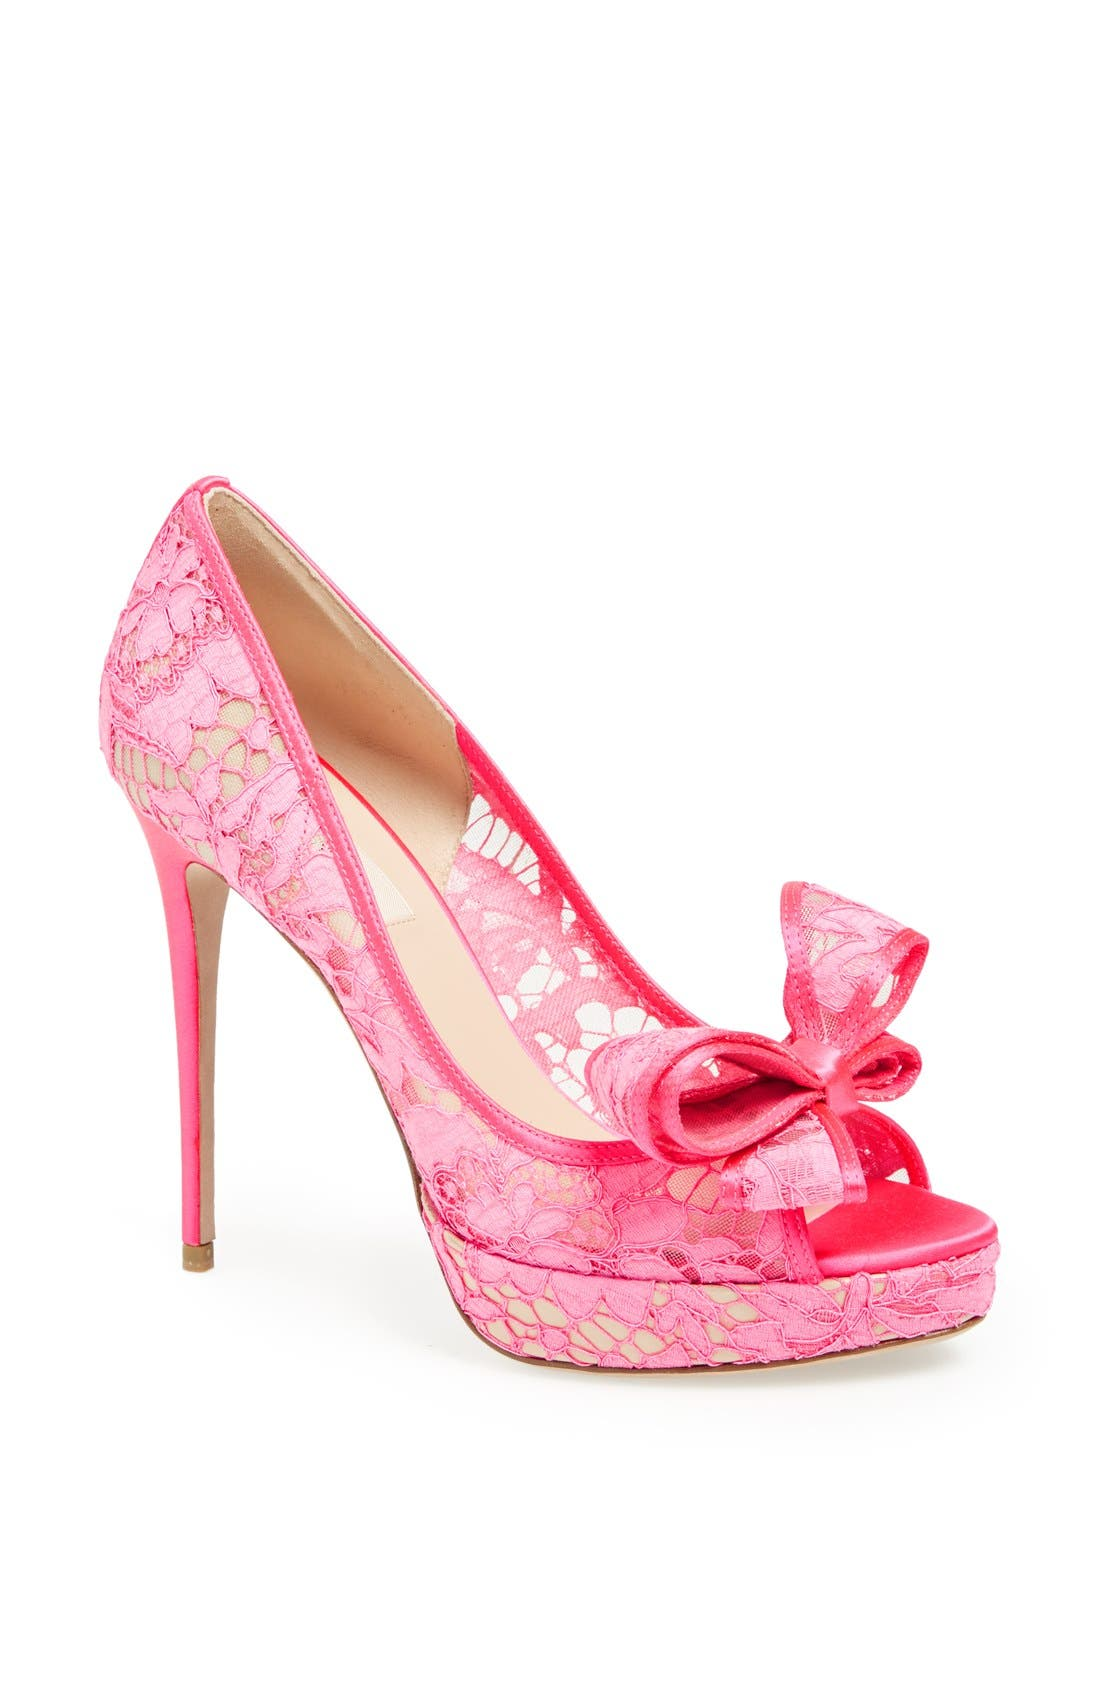 'Lace Couture Bow' Open Toe Pump,                             Main thumbnail 1, color,                             651